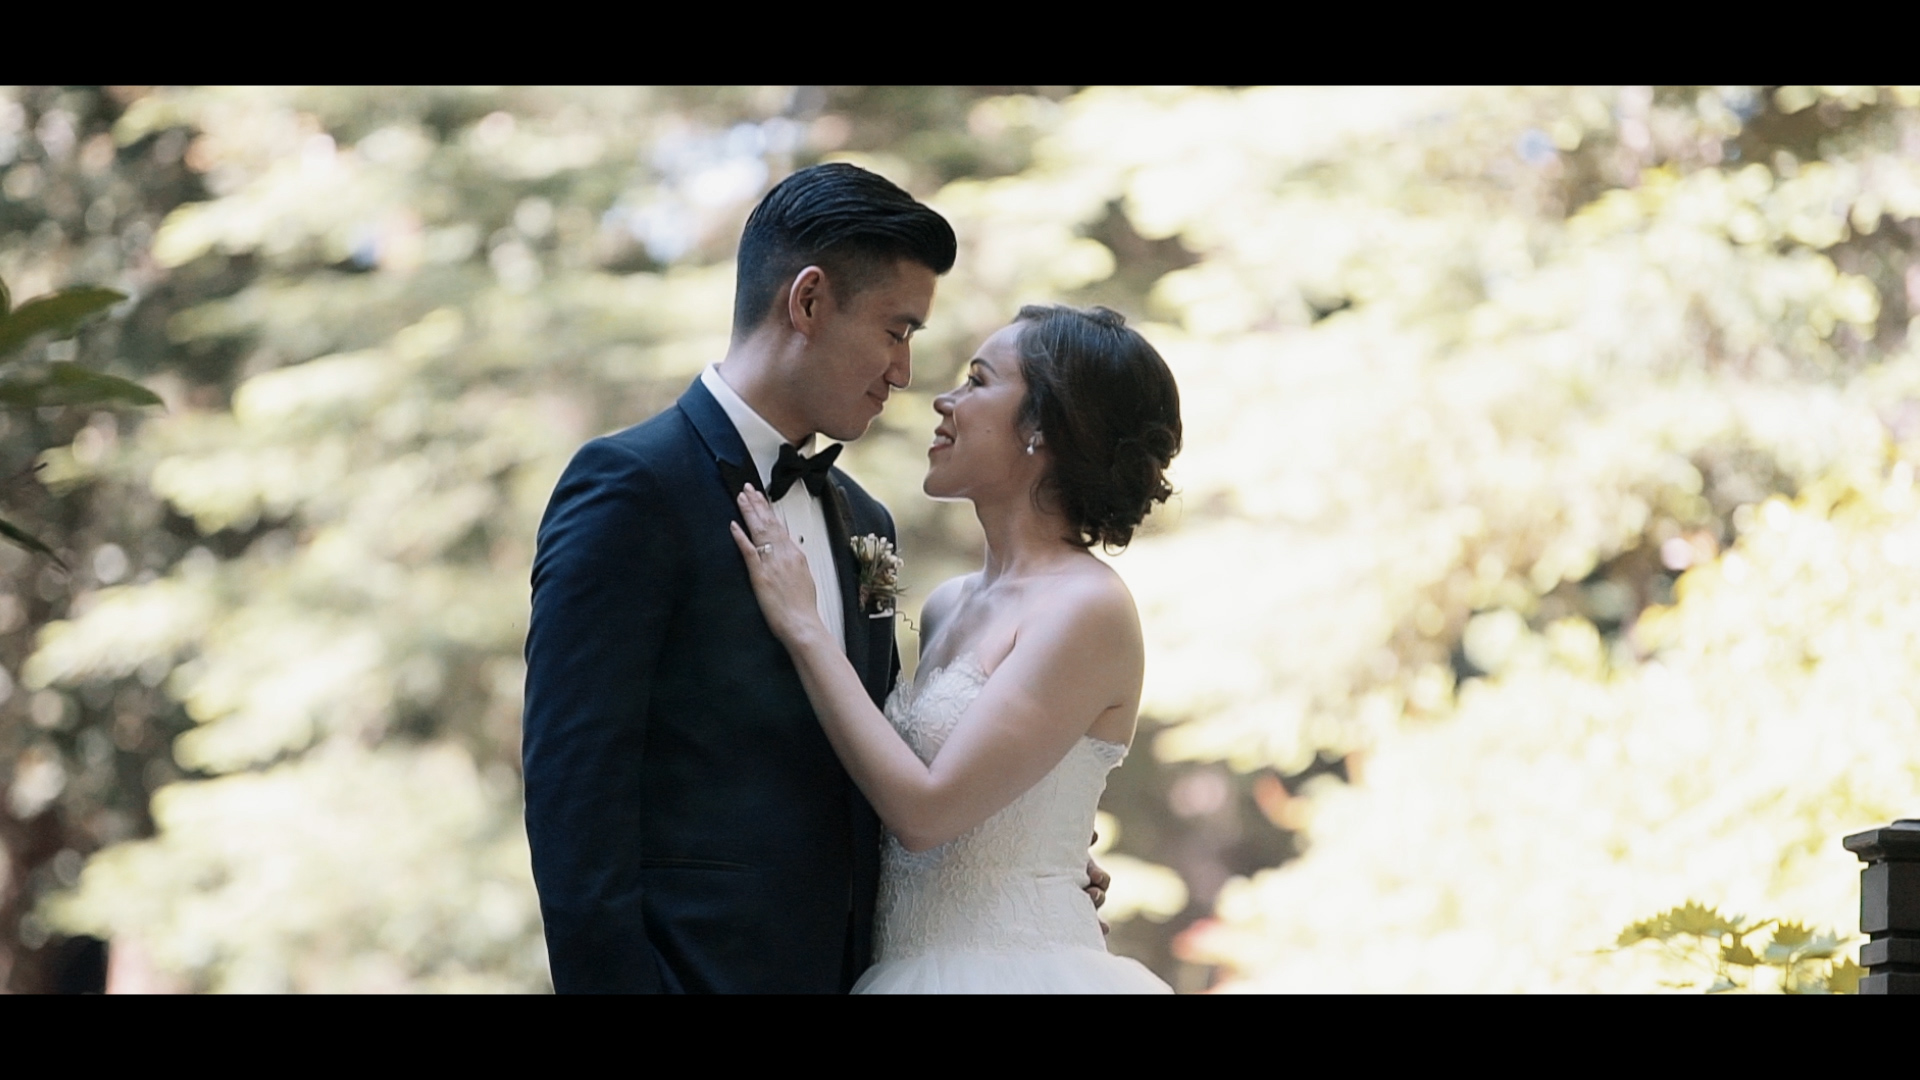 Cathy + Johnson | Los Gatos, California | Nestldown